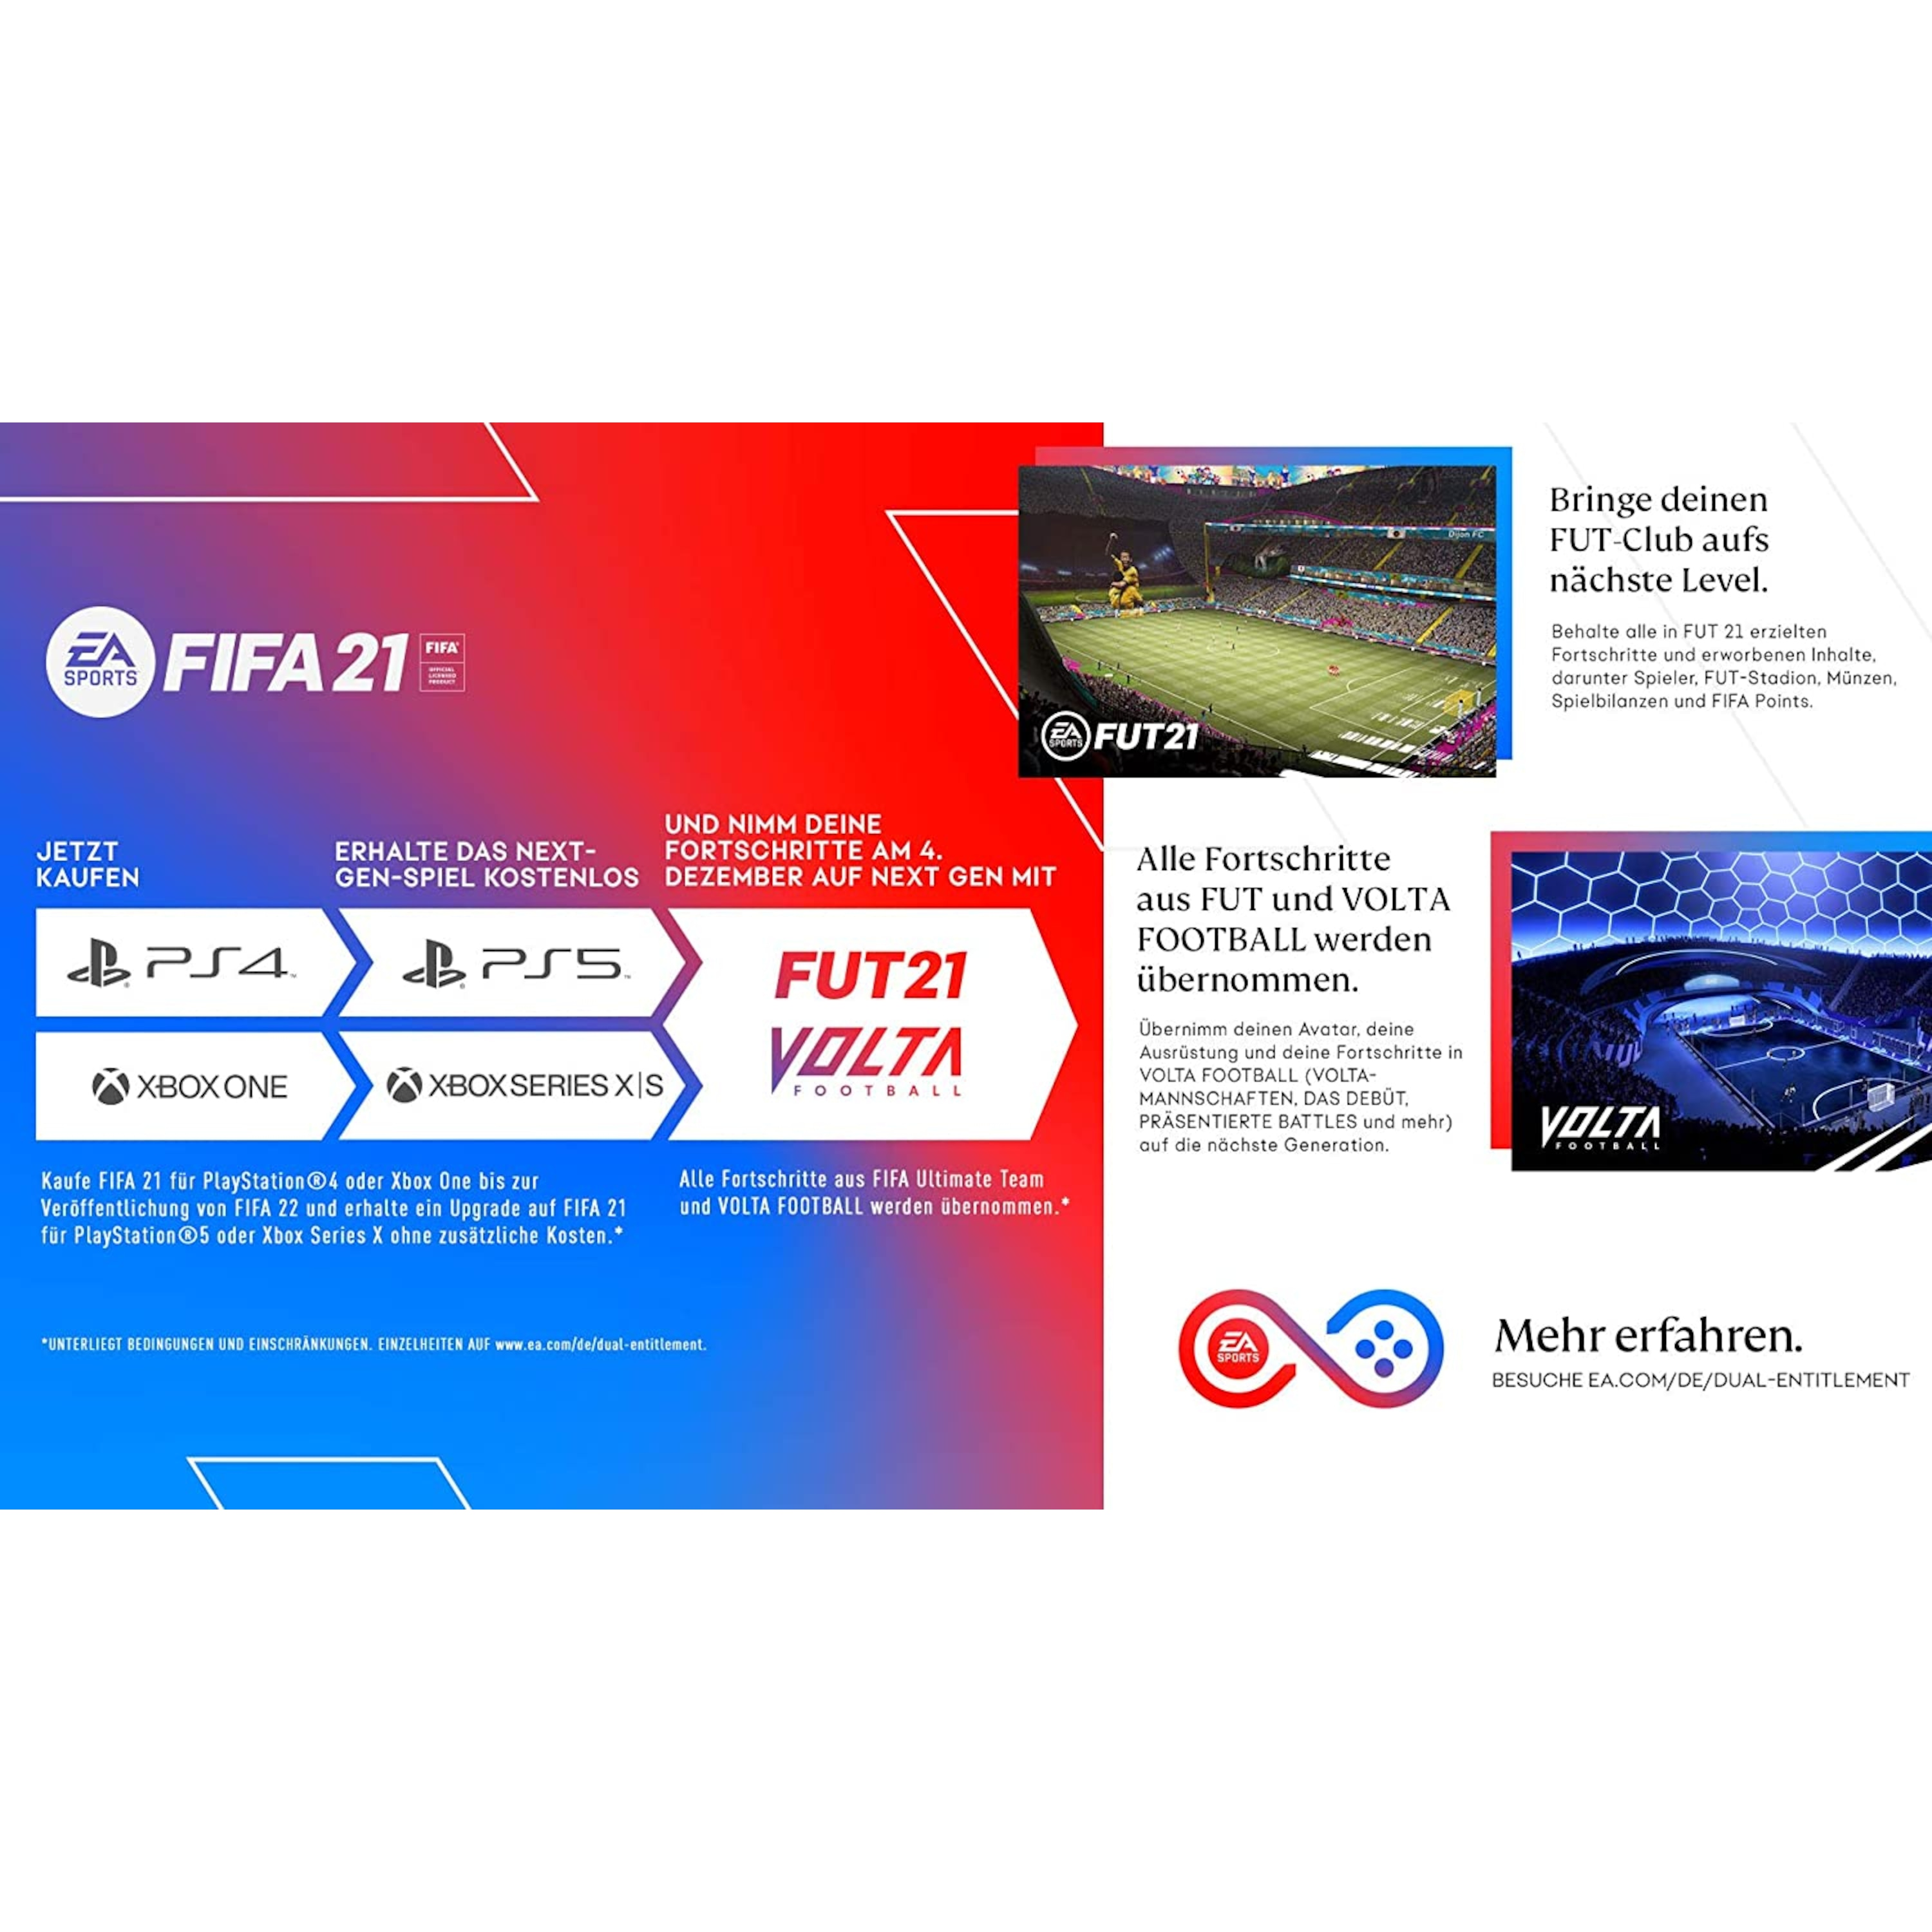 FIFA-21-Xbox-One-Standard-Edition-CD-Videospiel-DISC-EA-Sports-Series-X-Upgrade Indexbild 2